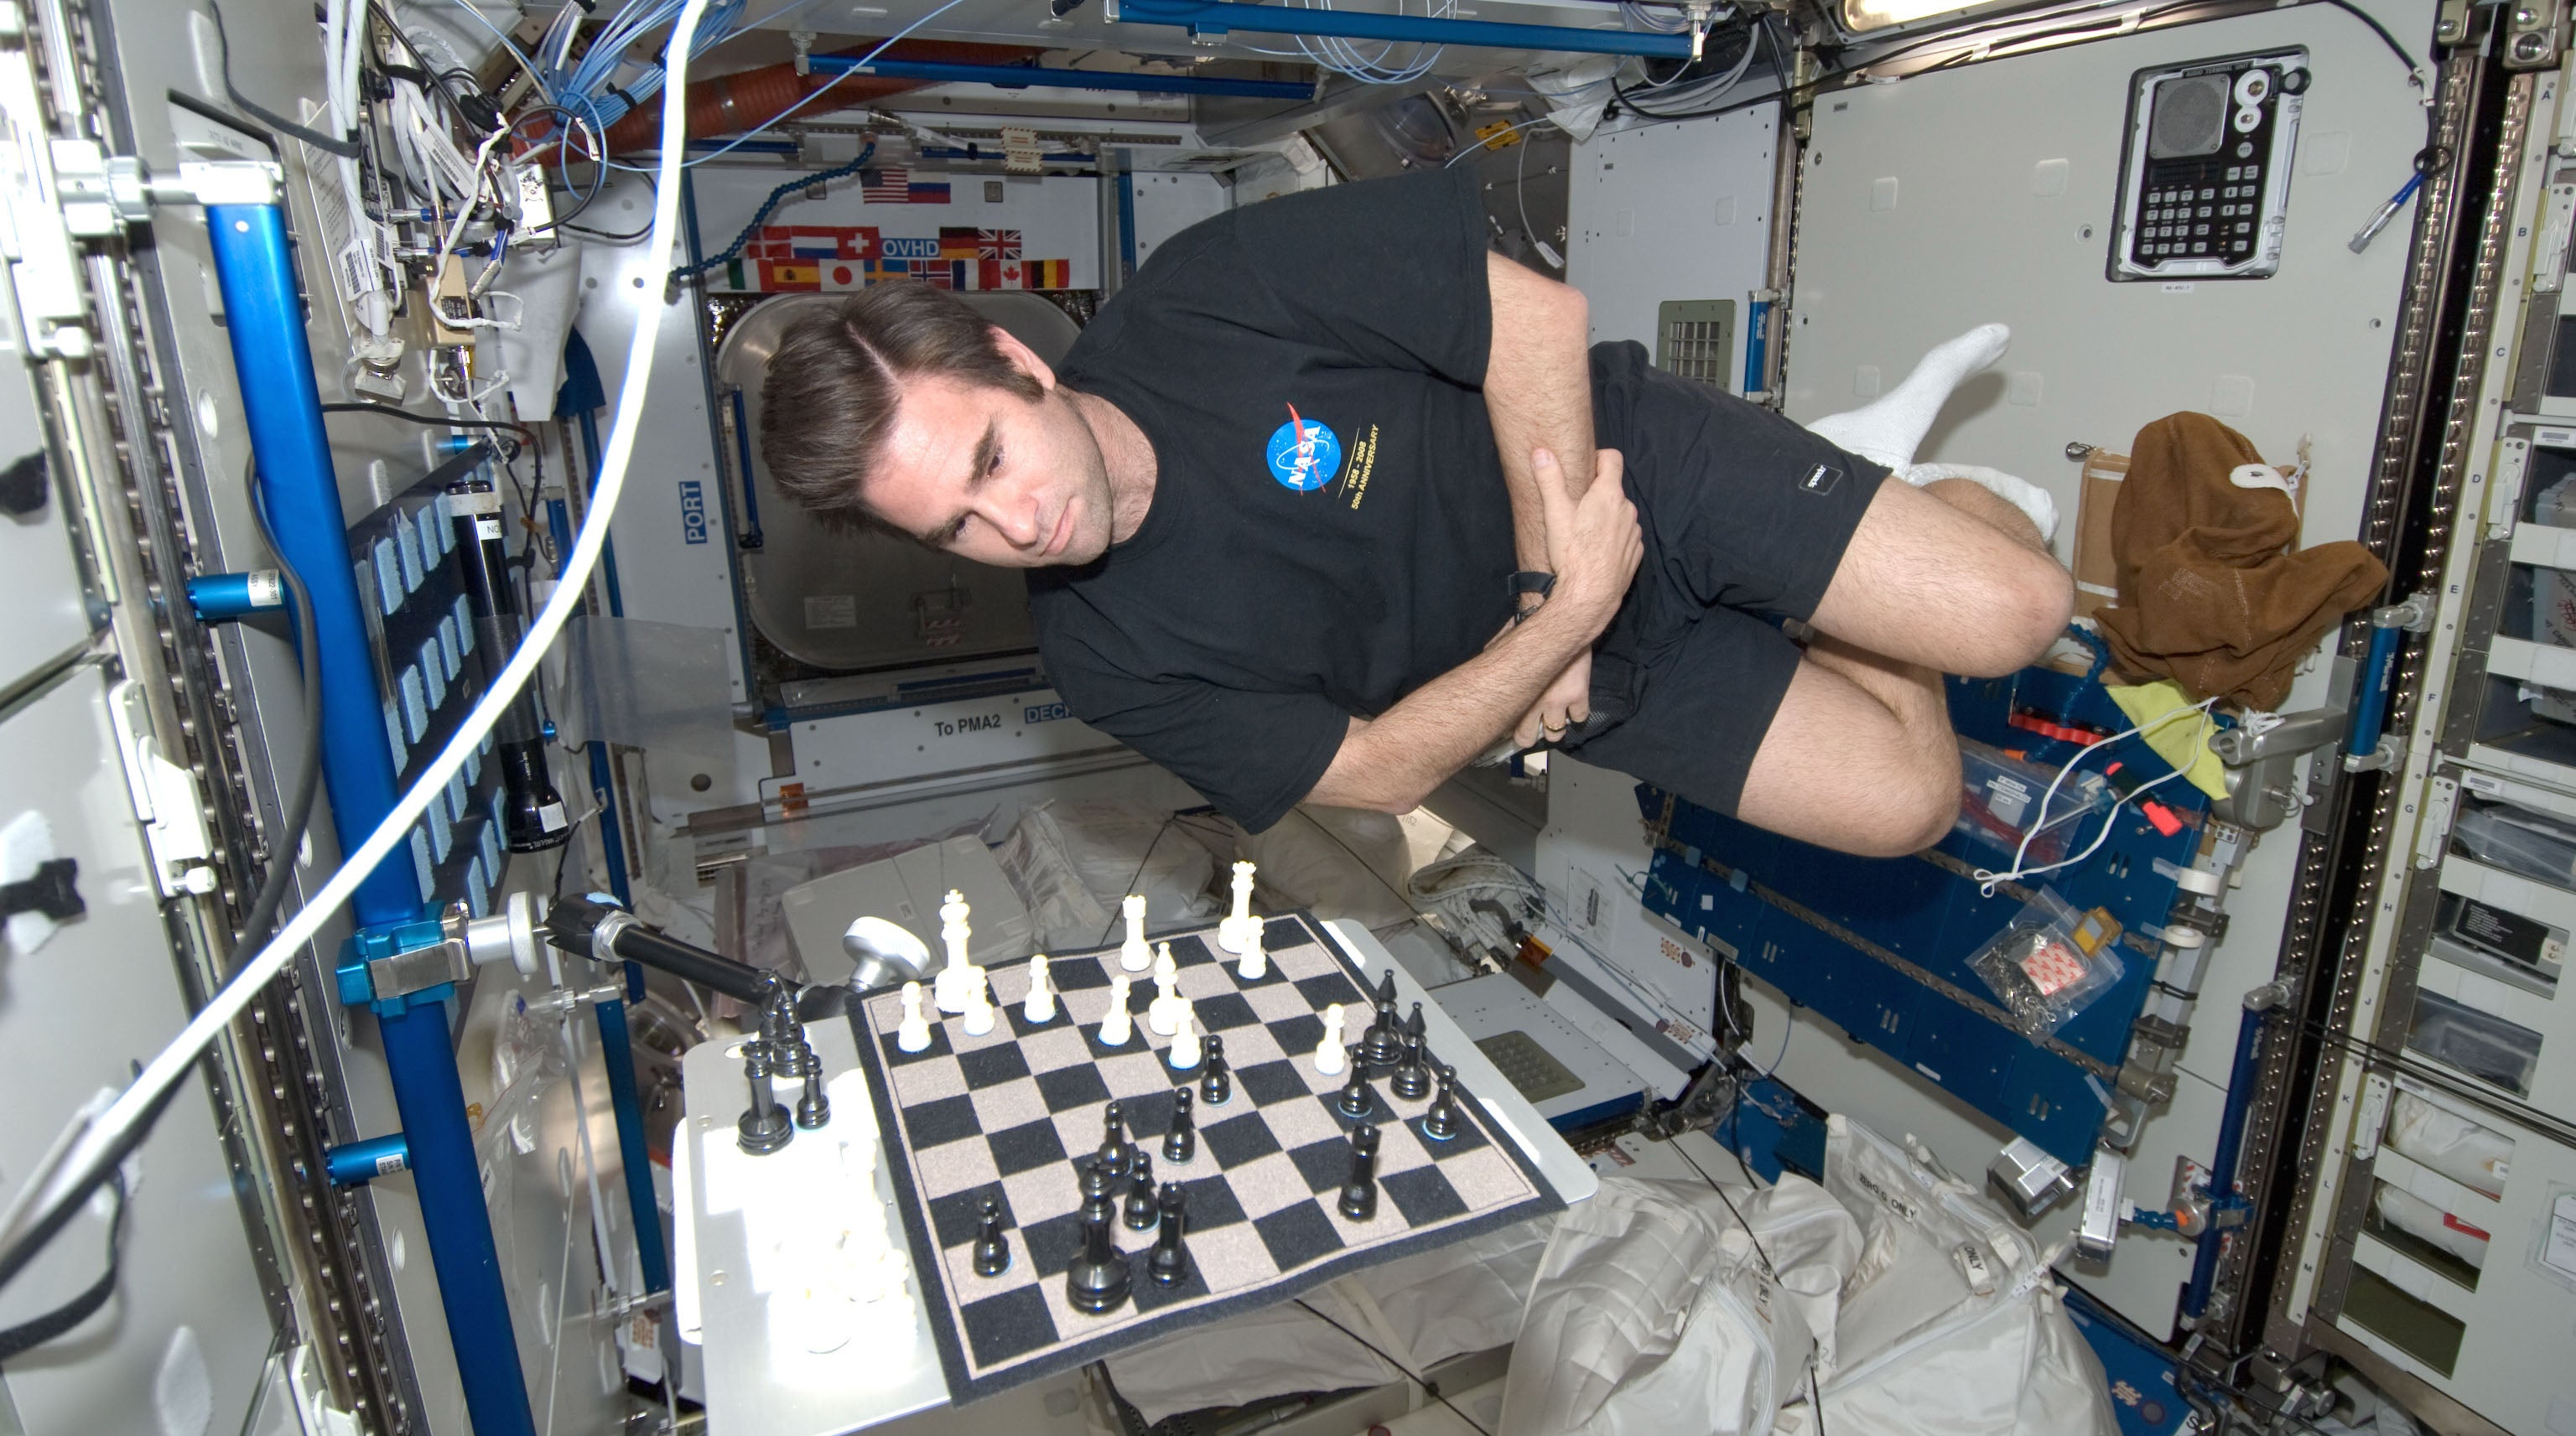 What Actually Goes Down On The International Space Station